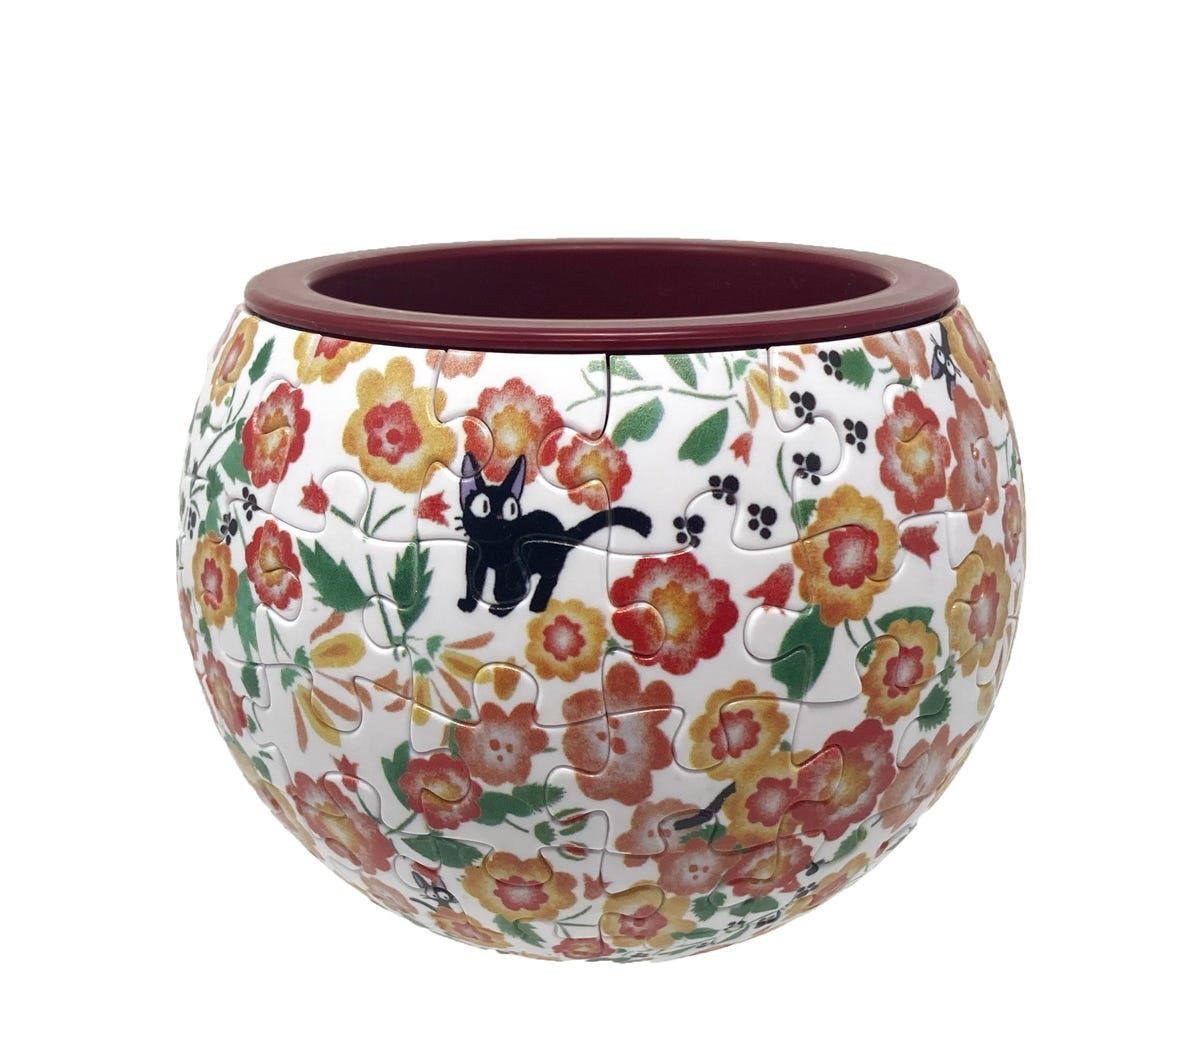 "Ensky AT8-04 Jiji Flower Garden Puzzle Bowl ""Kiki's Delivery Service"", Ensky Art Bowl Jigsaw"